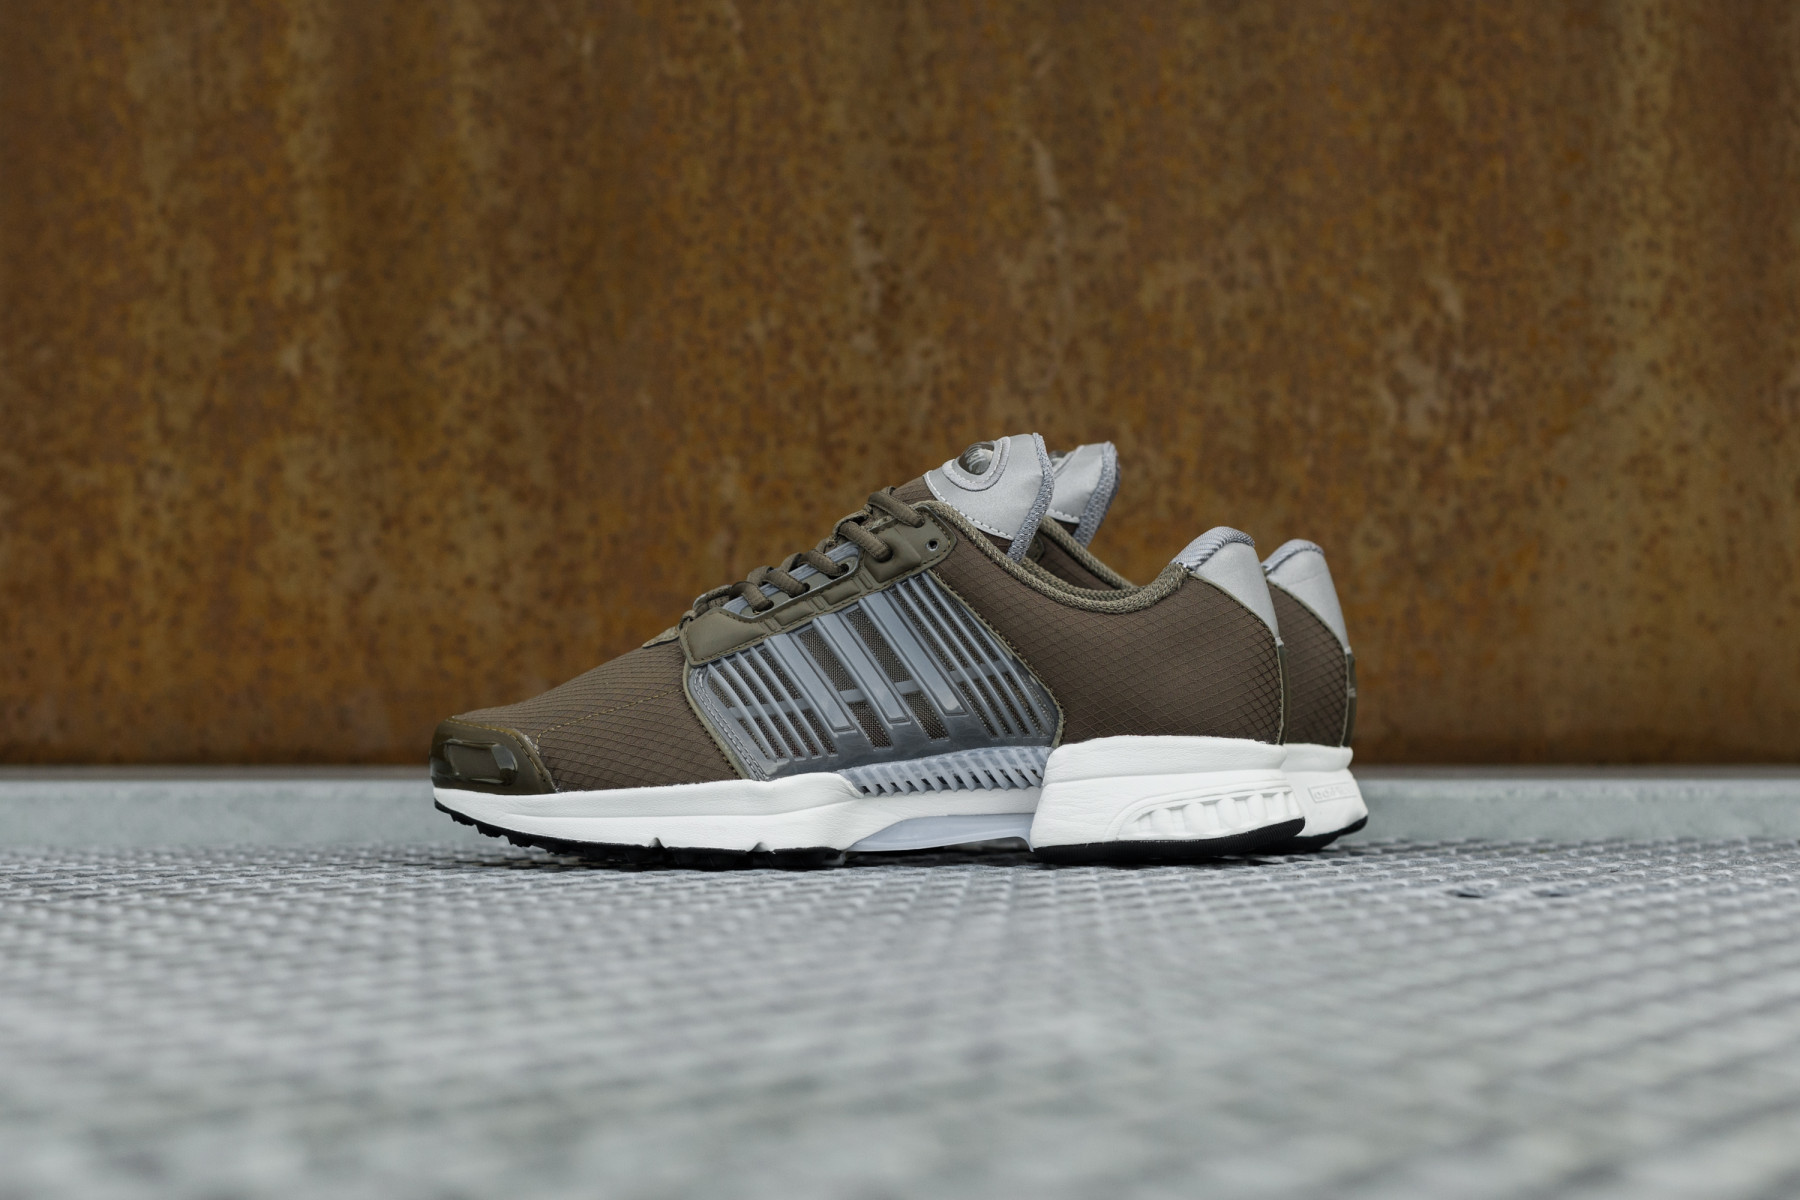 Adidas Climacool 1 Sneaker.no